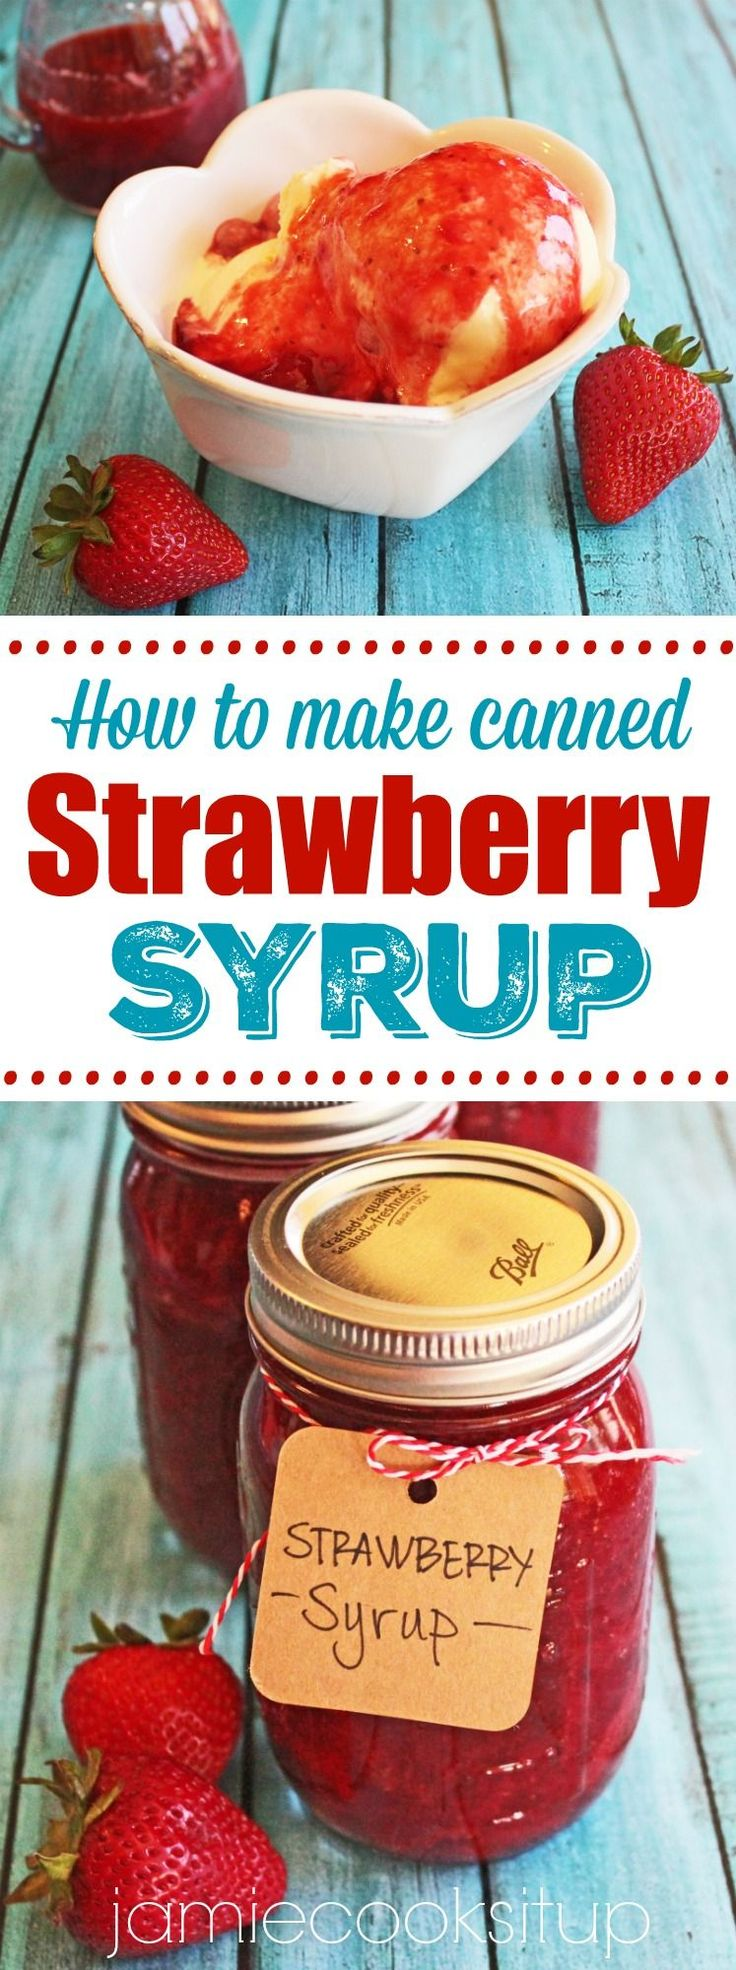 How to make Canned Strawberry Syrup from Jamie Cooks It Up! This syrup is fabulous poured over pancakes, waffles or vanilla ice cream.